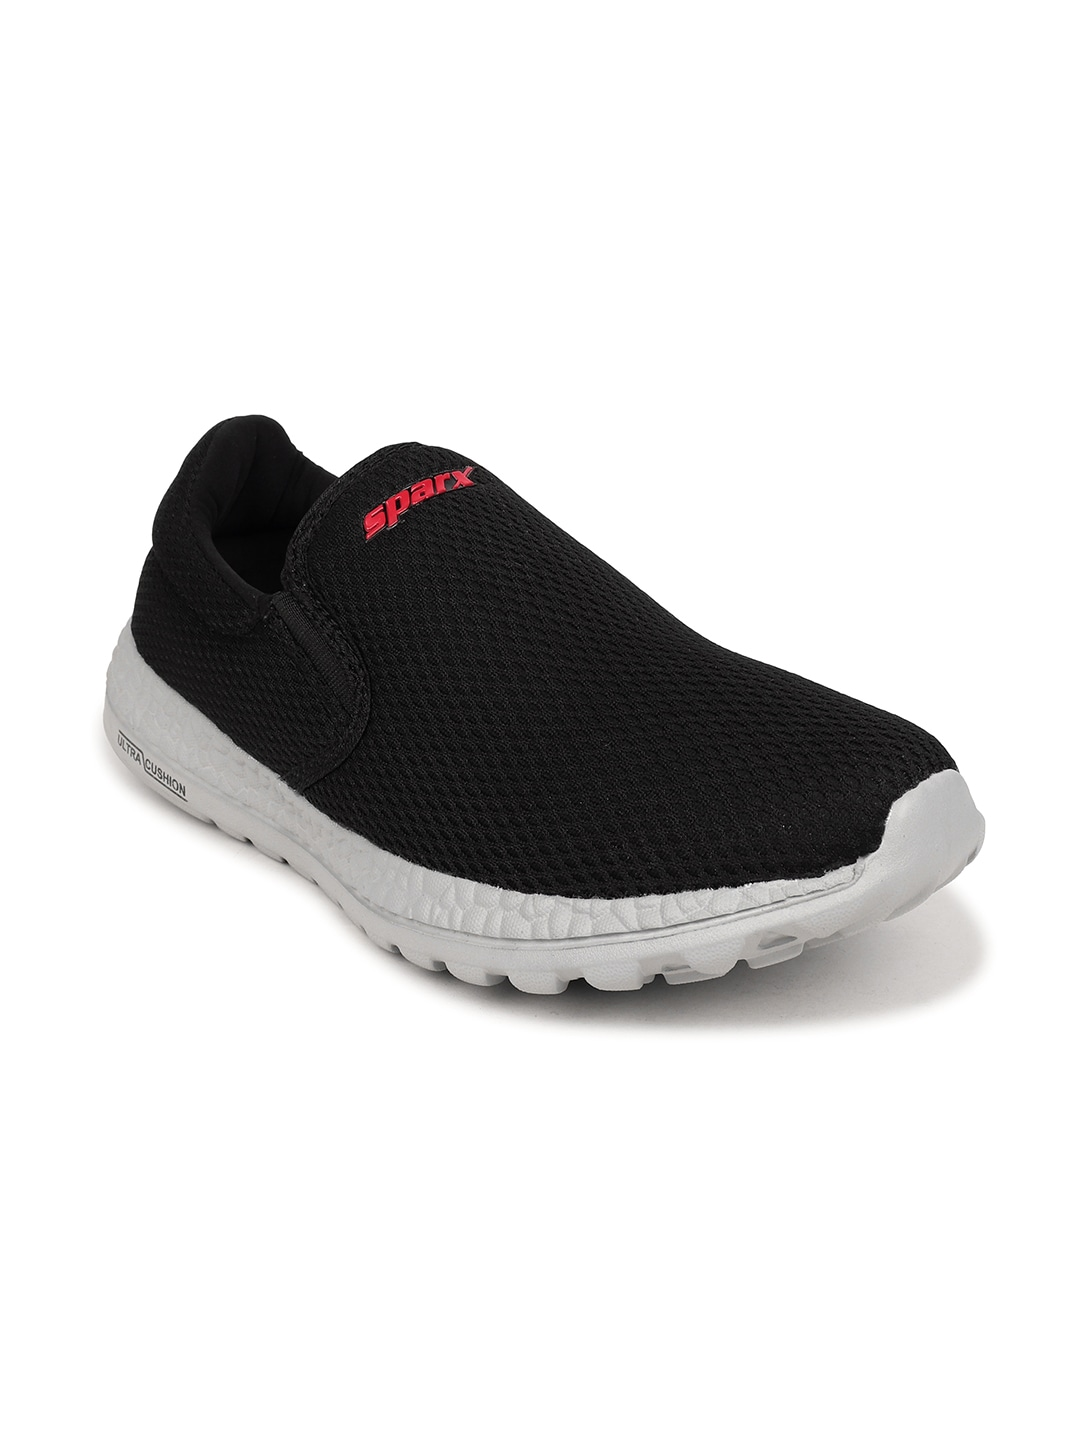 814d4103f915f Sparx Shoes - Buy Sparx Shoes for Men Online in India